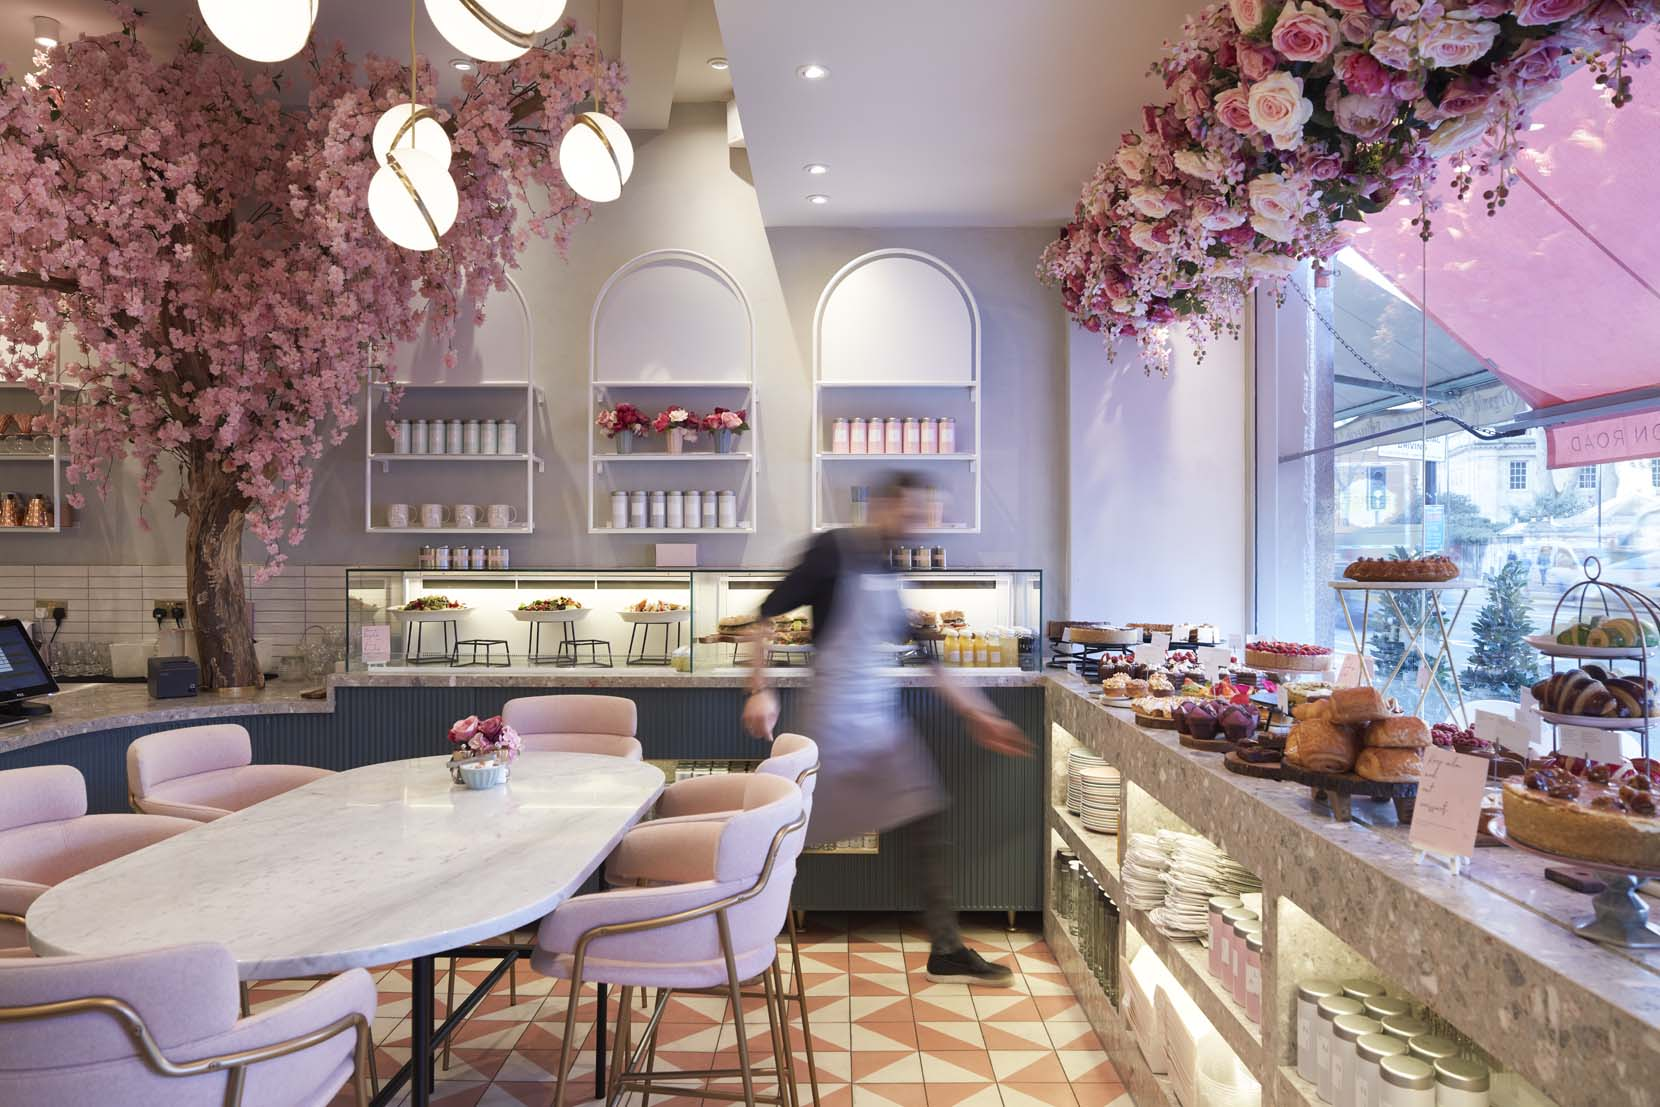 Elan cafe on Brompton Road in London - interior designed by Holland Harvey Architects.